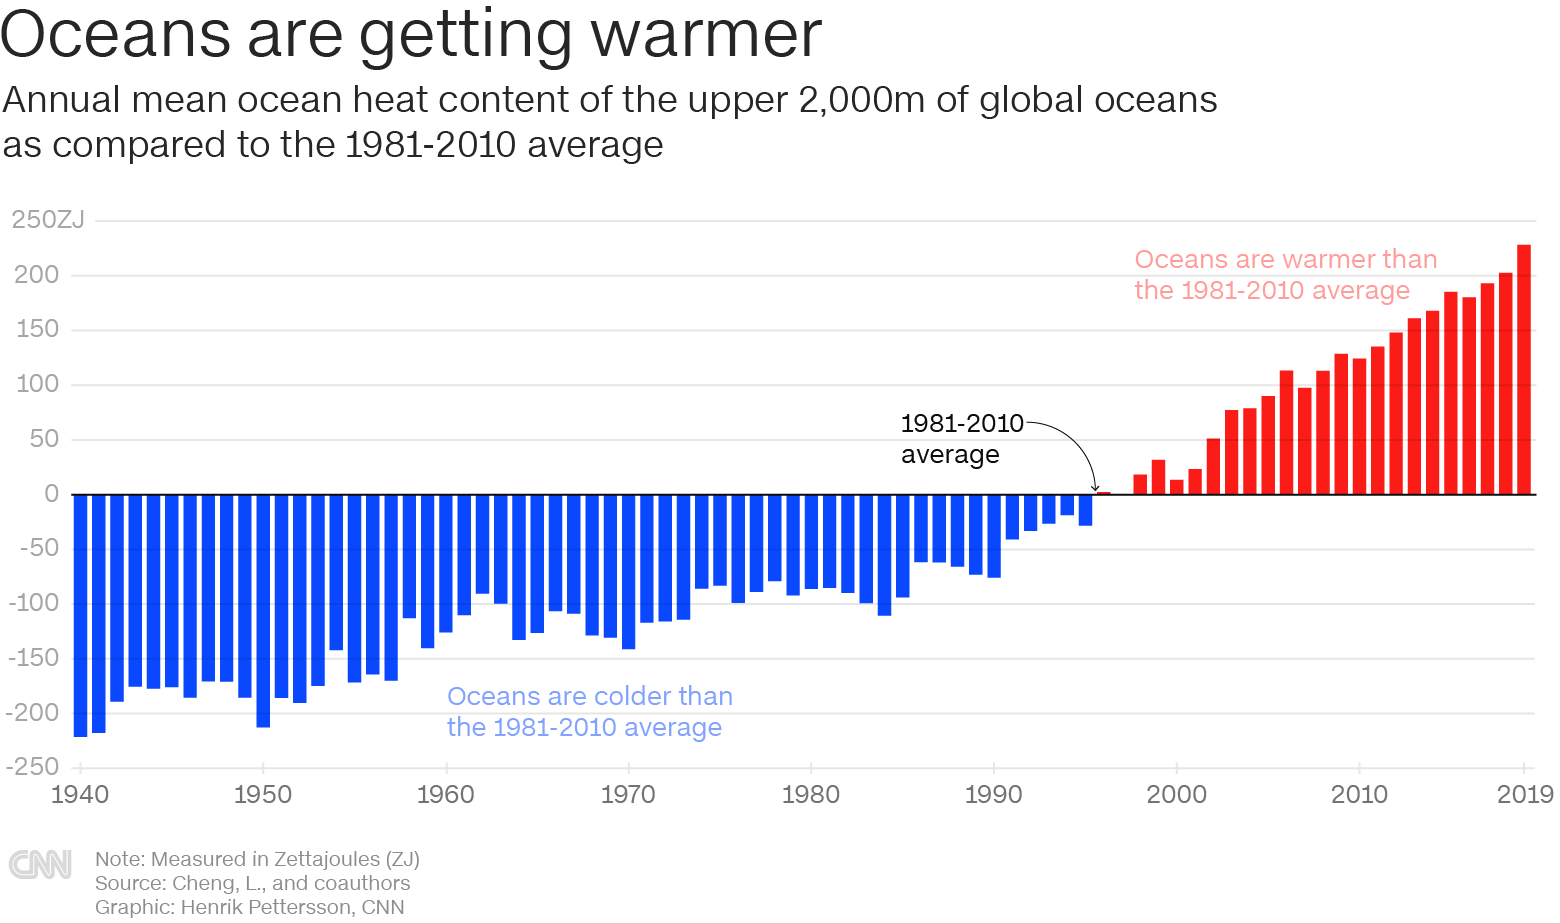 https://cdn.cnn.com/cnn/.e/interactive/html5-video-media/2020/01/13/oceans_warming_780px_2.png